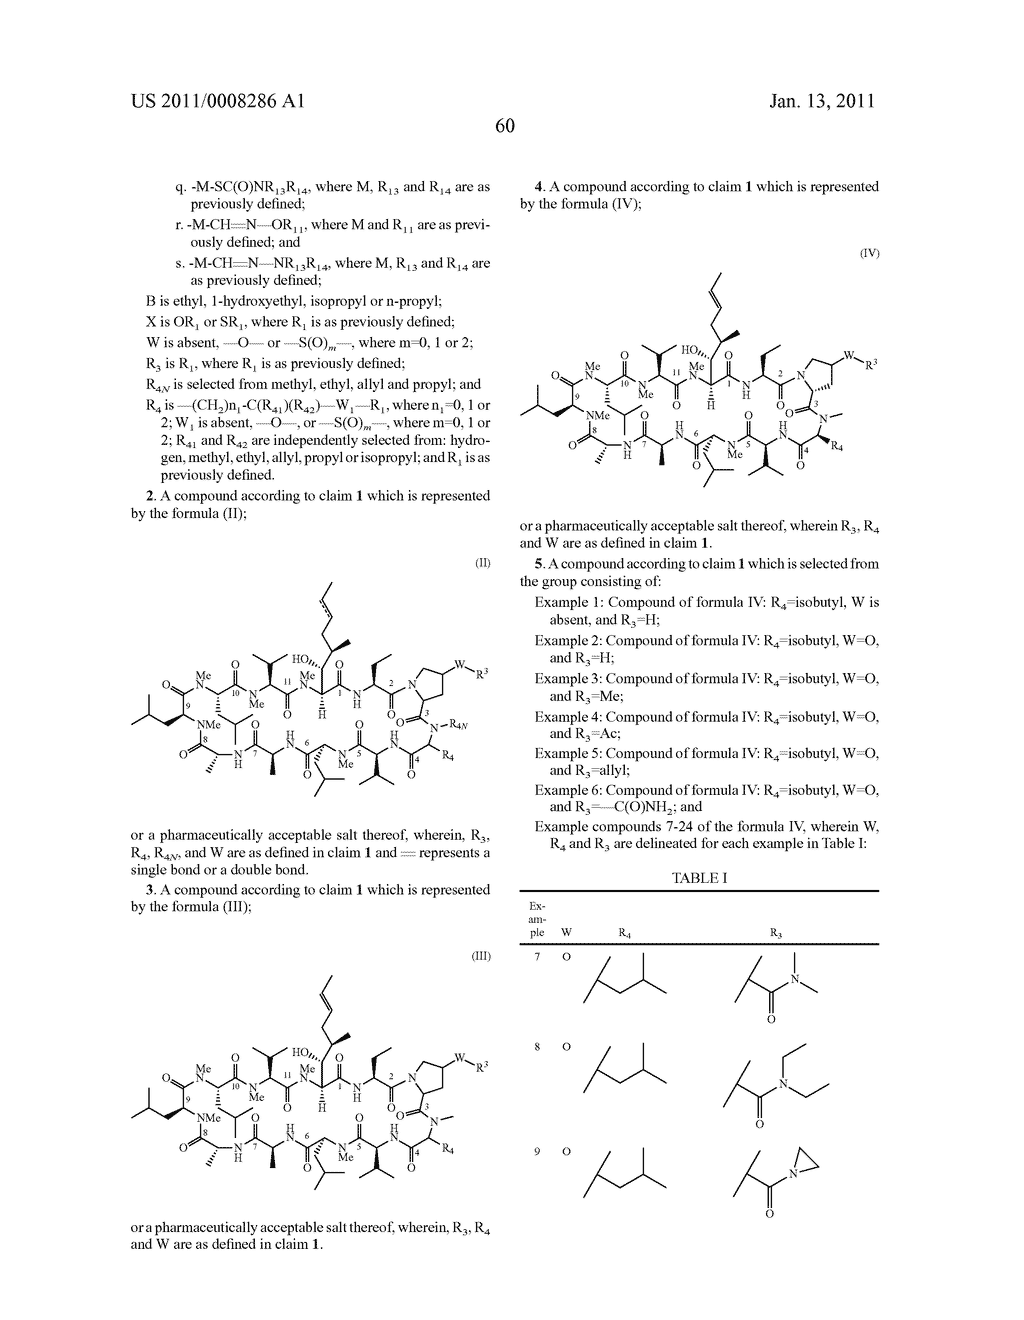 NOVEL PROLINE SUBSTITUTED CYCLOSPORIN ANALOGUES - diagram, schematic, and image 61